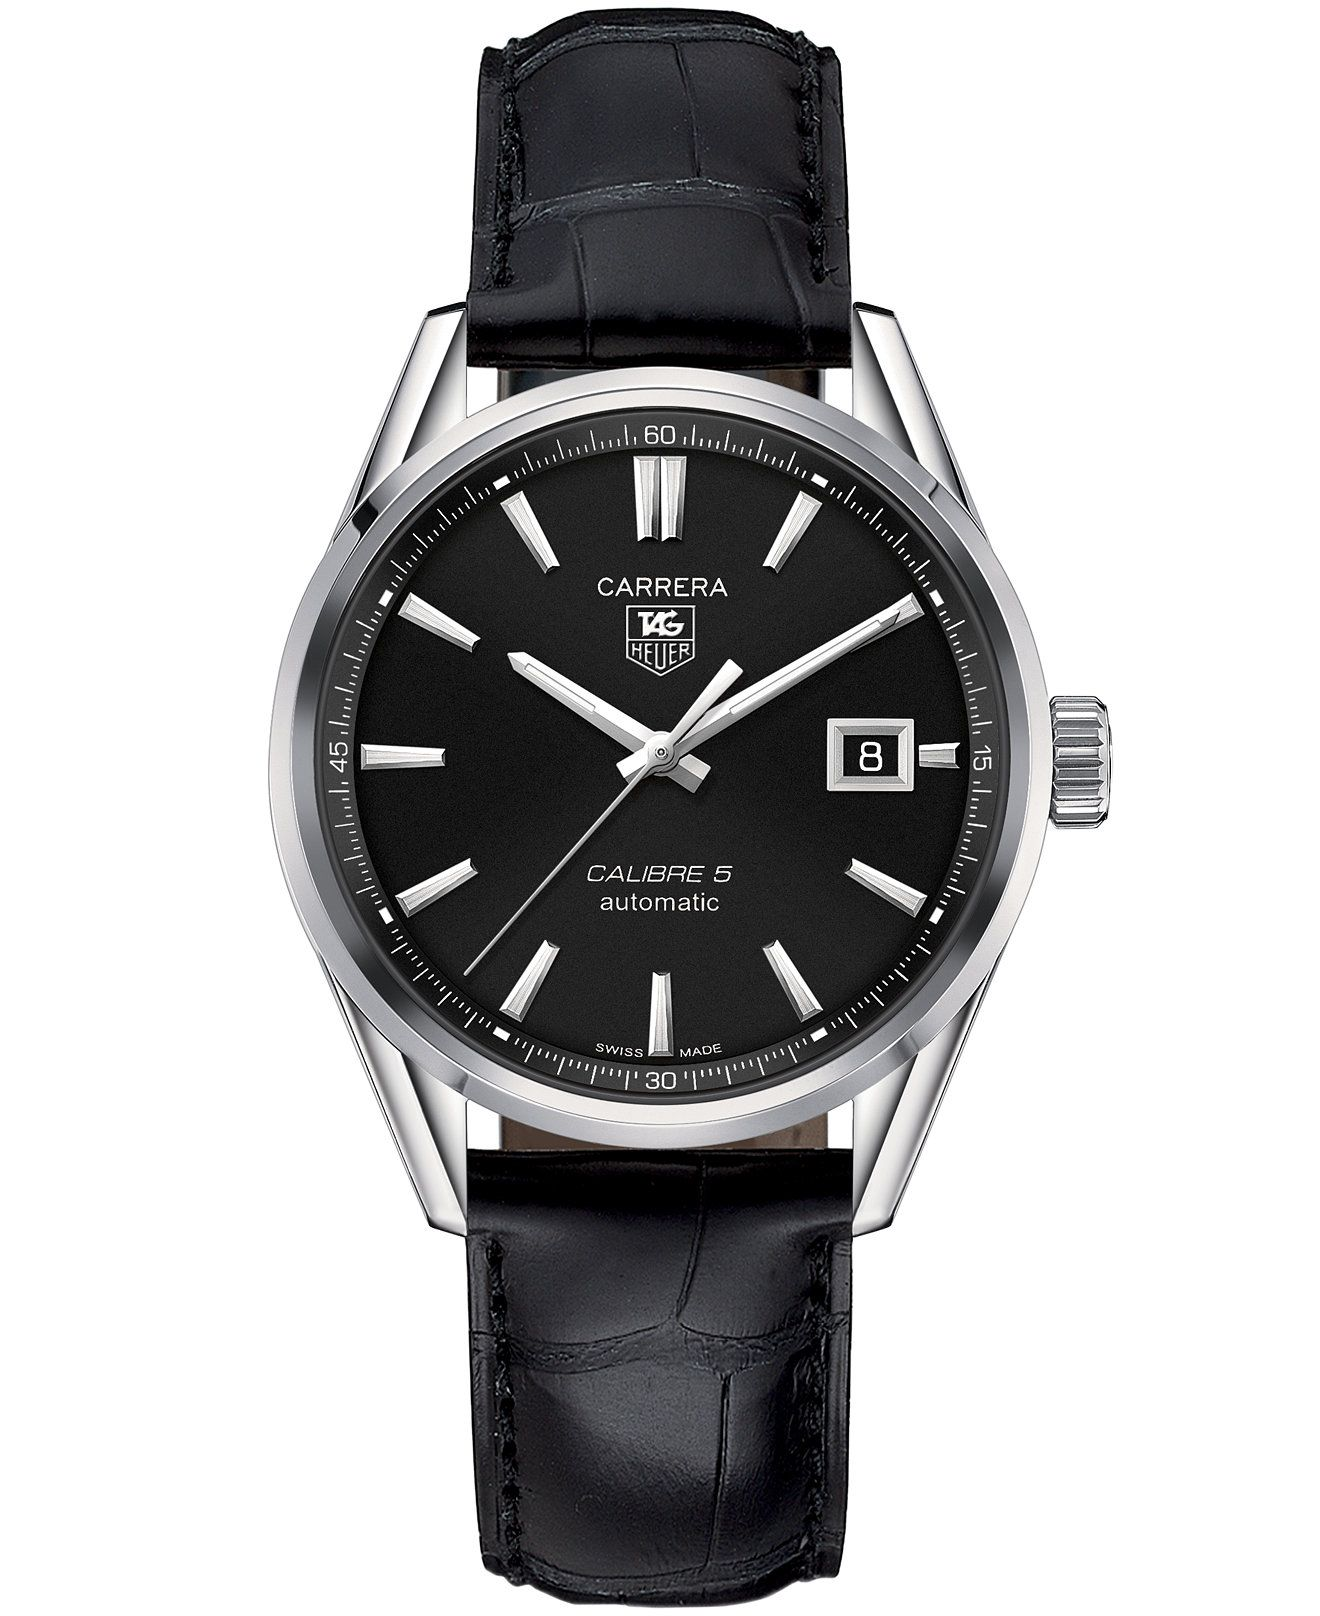 91dd84595a3 TAG Heuer Men s Swiss Automatic Carrera Calibre 5 Black Leather Strap Watch  39mm WAR211A.FC6180 - Men s Watches - Jewelry   Watches - Macy s